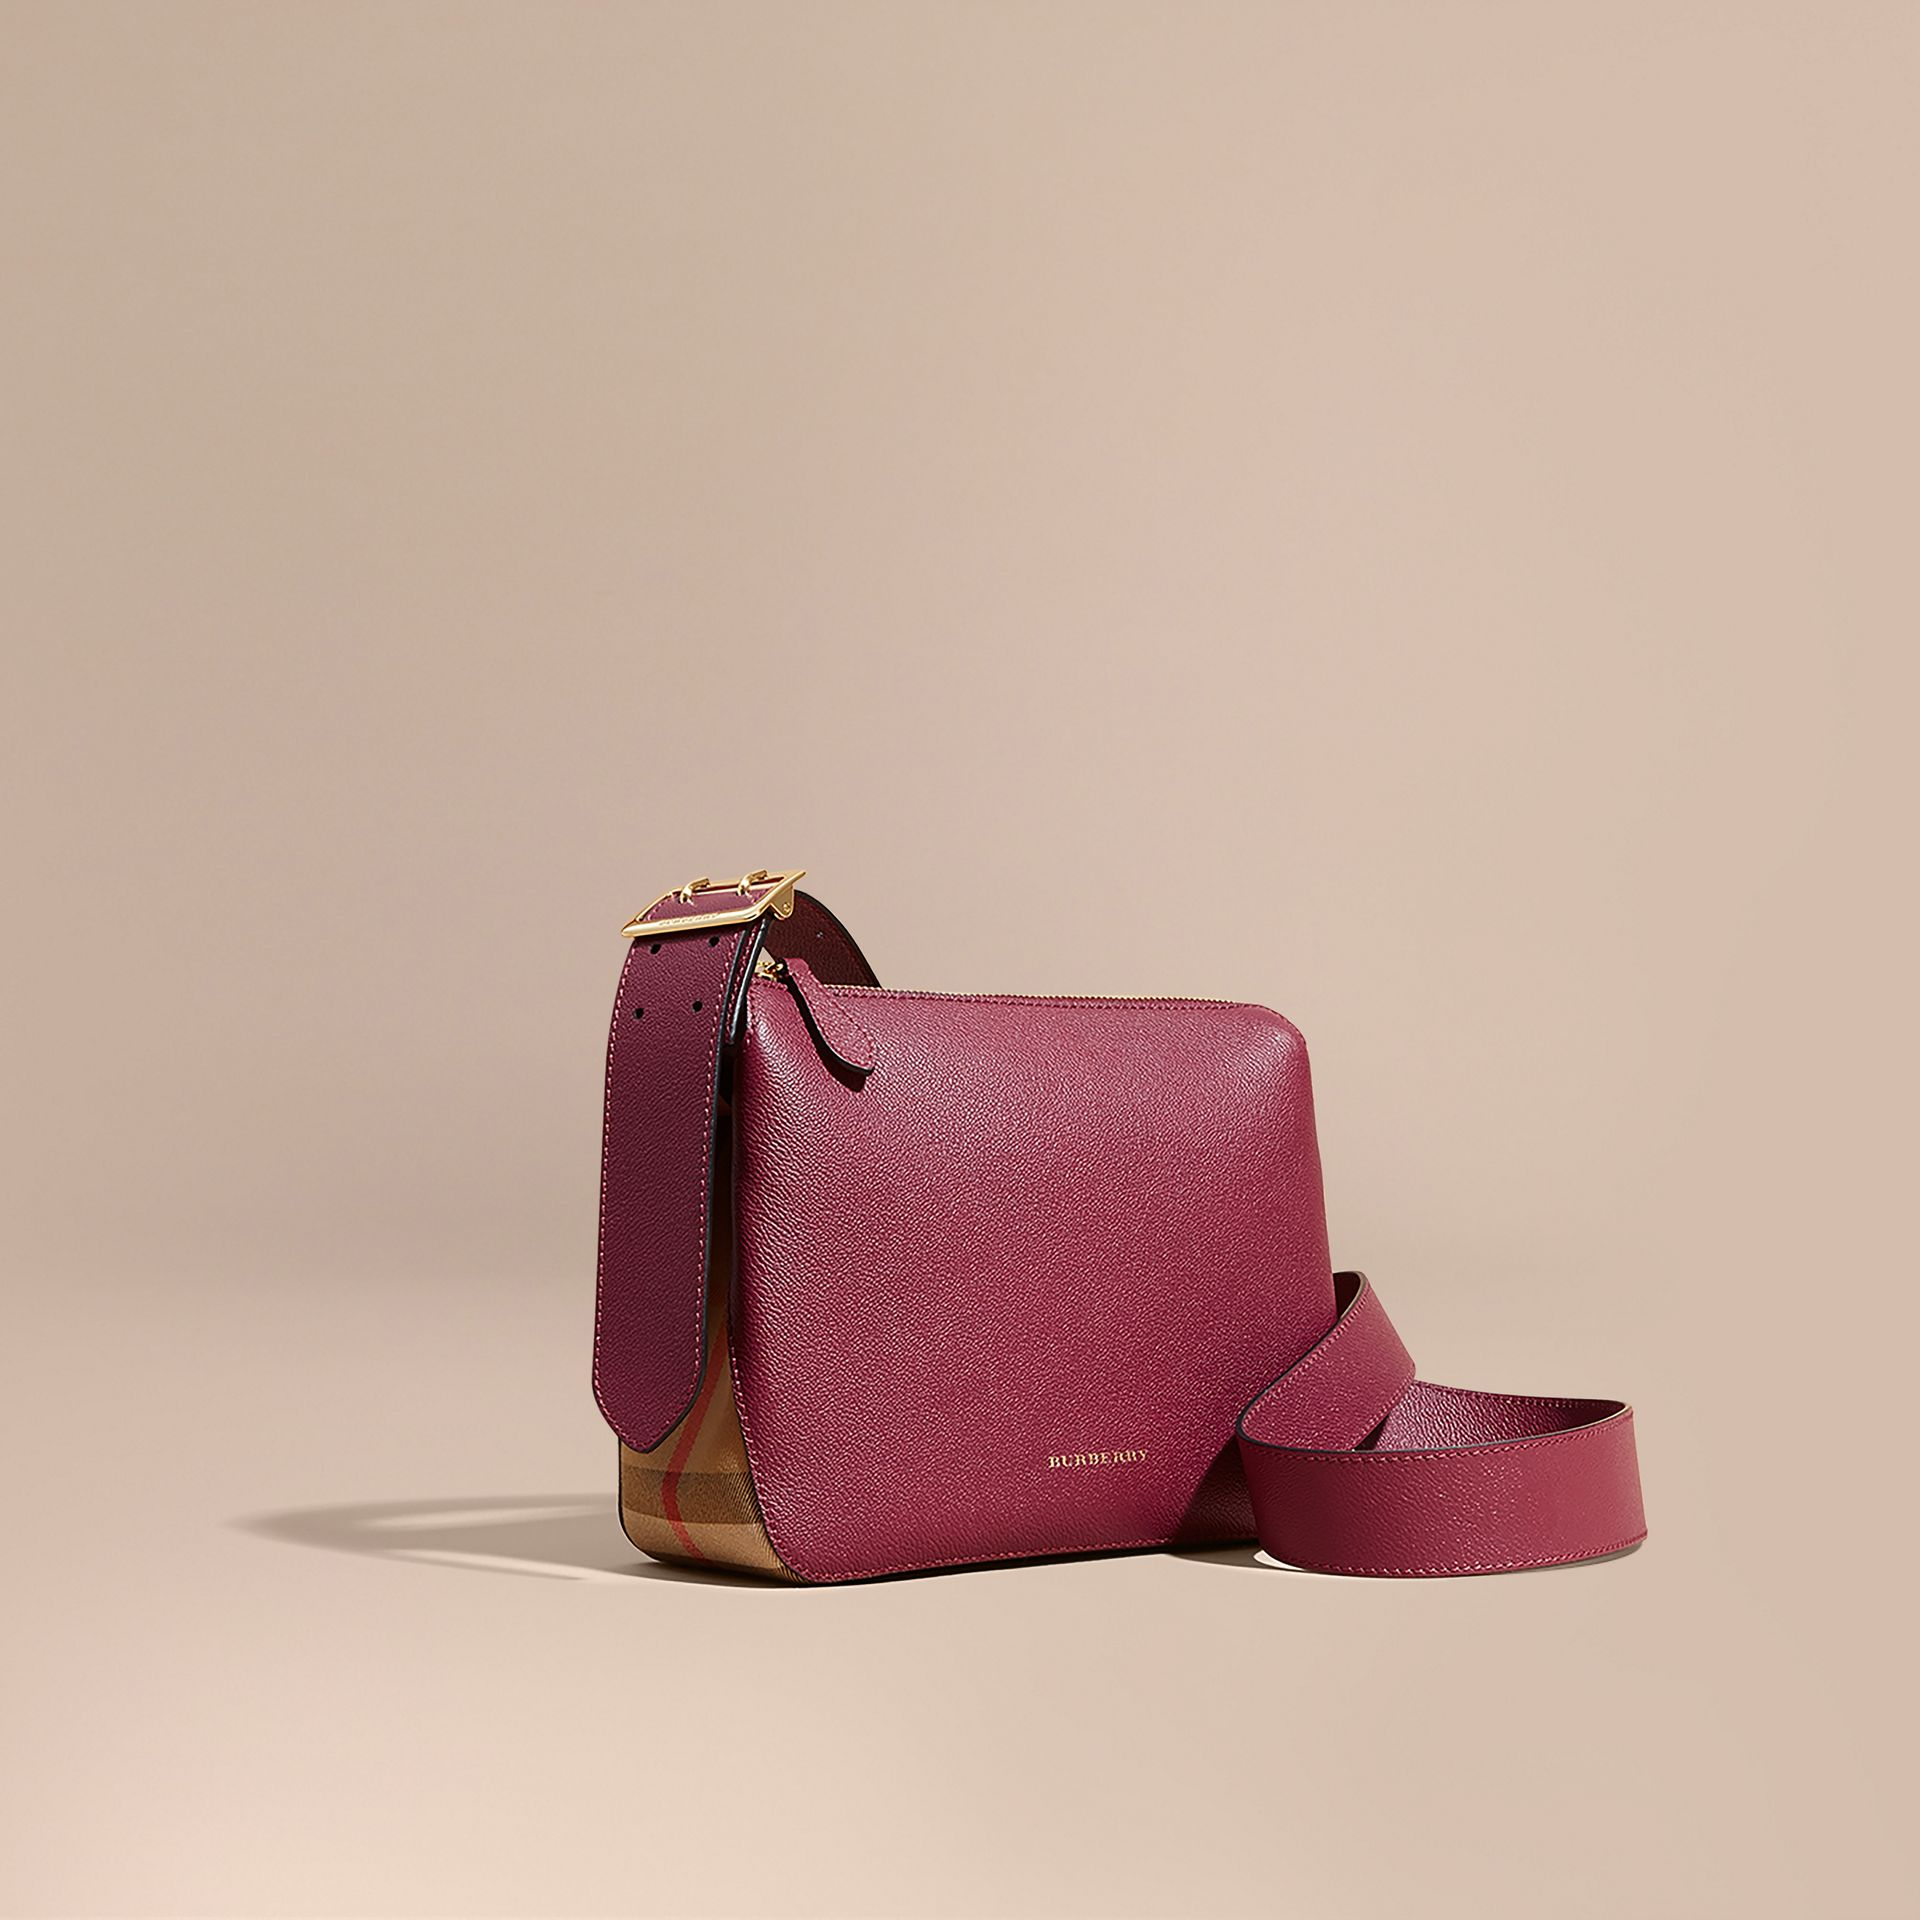 Buckle Detail Leather and House Check Crossbody Bag in Dark Plum - Women | Burberry - gallery image 1